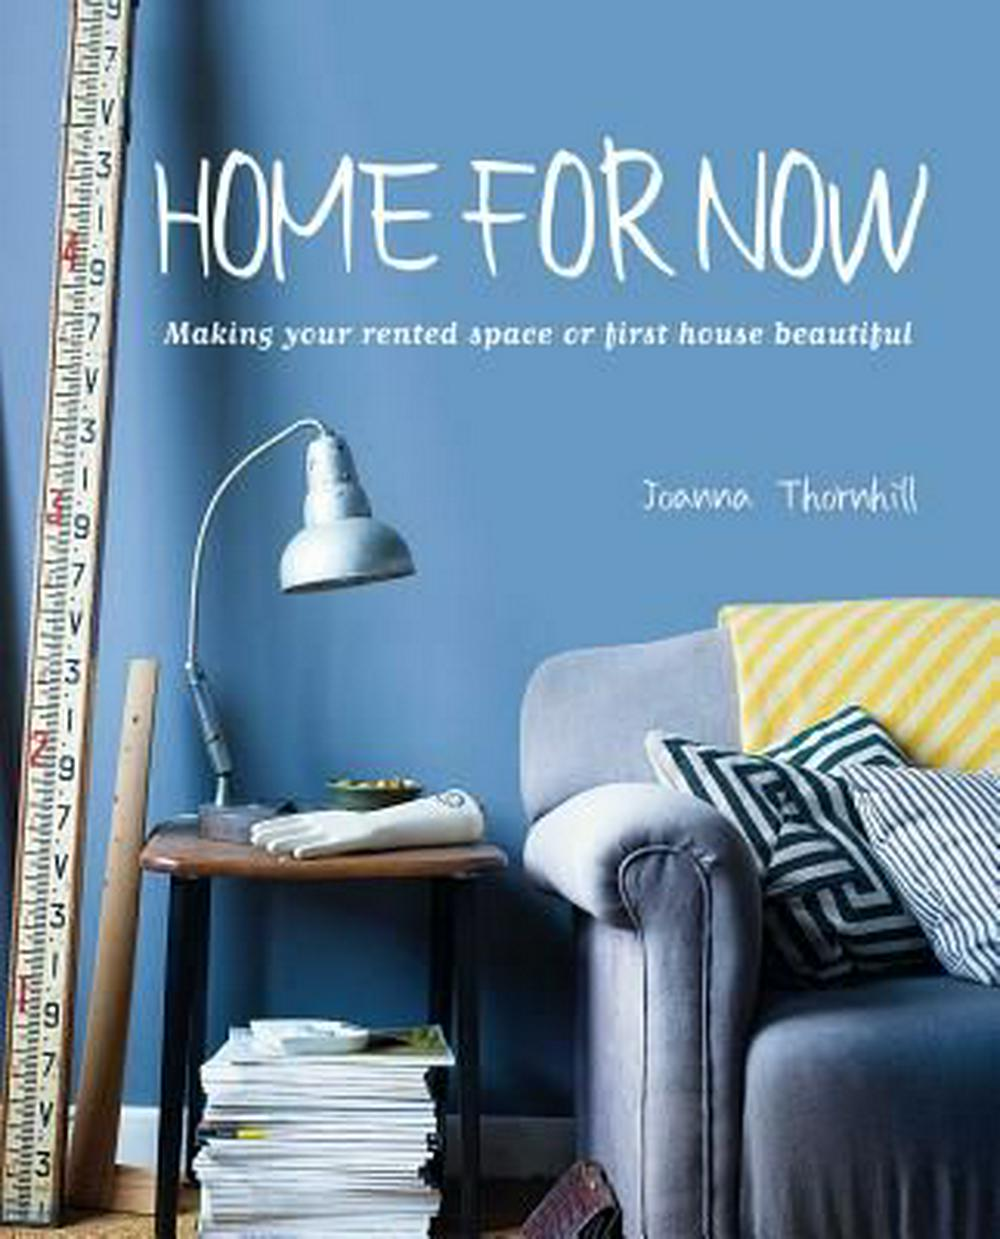 Home For Now By Joanna Thornhill, ISBN: 9781782490968